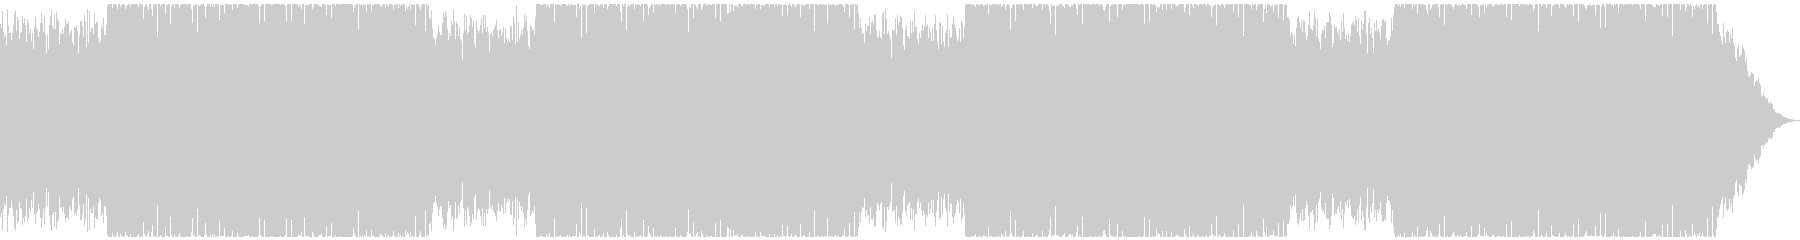 Music for games that fits empty images with EDM's unreproduced waveform